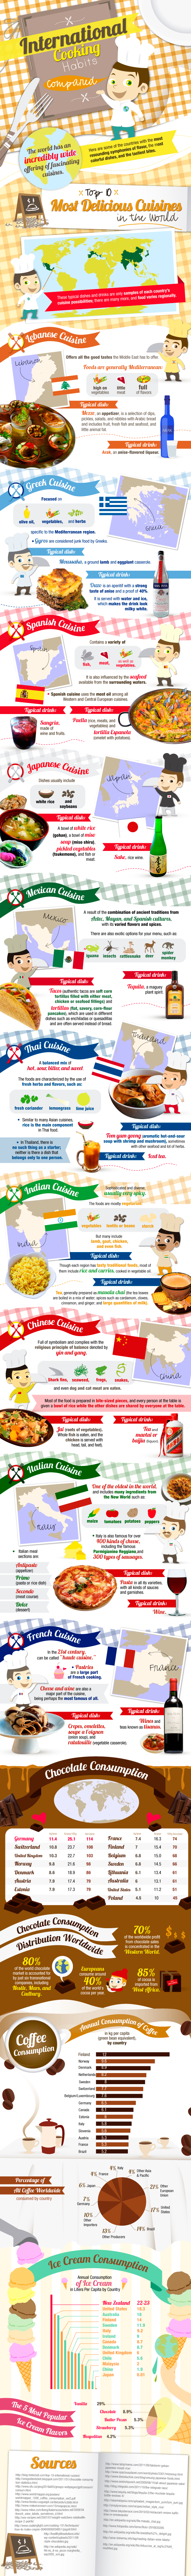 International Cooking Habits and Most Popular Cuisines